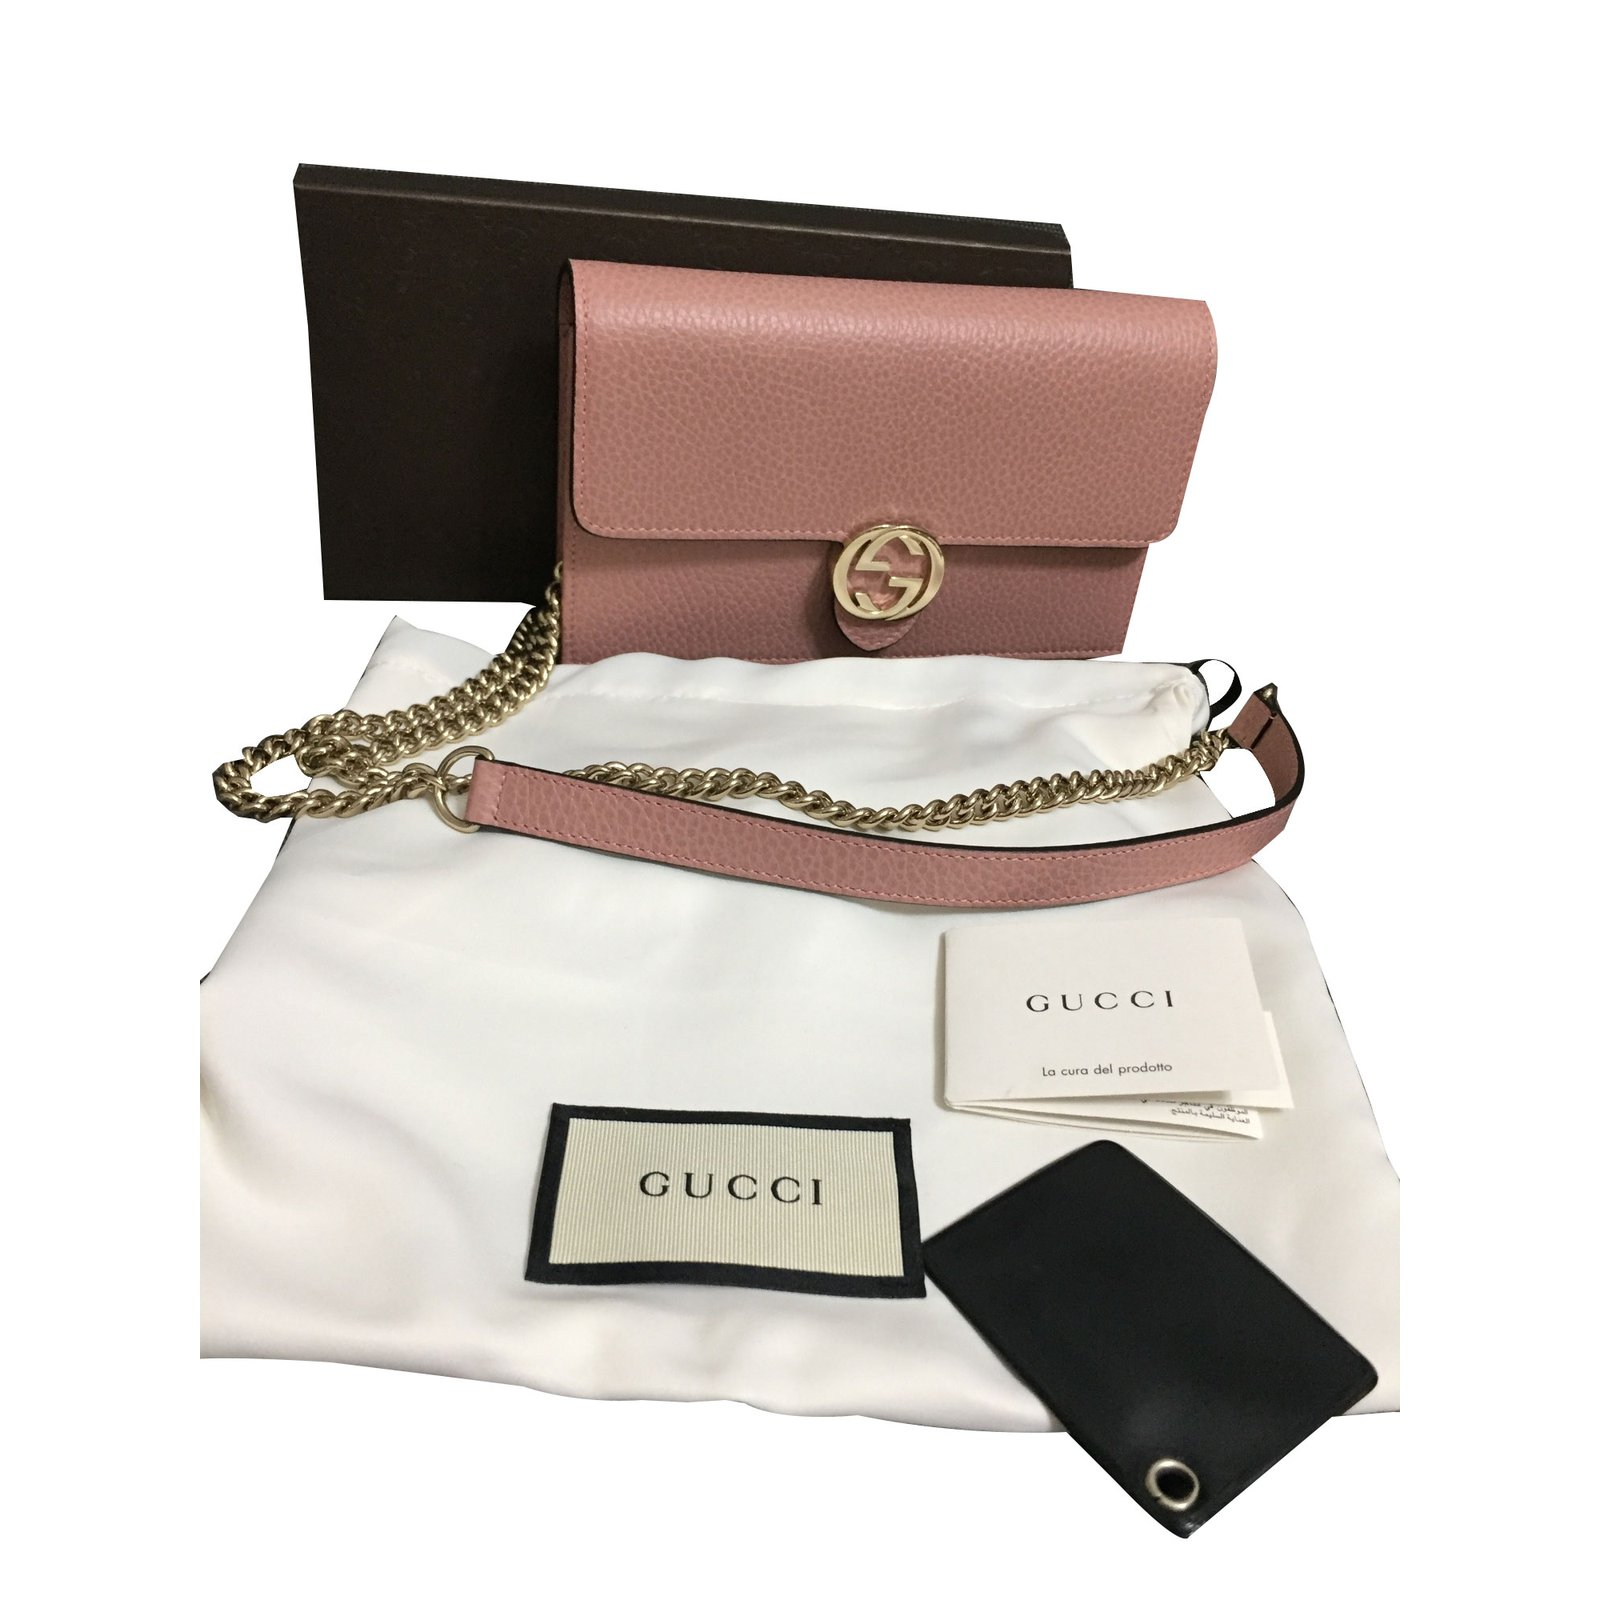 03970d93648 Pee Maroquinerie Gucci Wallet On Chain Cuir Rose Ref 65230 Joli. Authentic  Gucci Outlet Fabulous Instantly Recognizable Pink Guccissima Leather ...